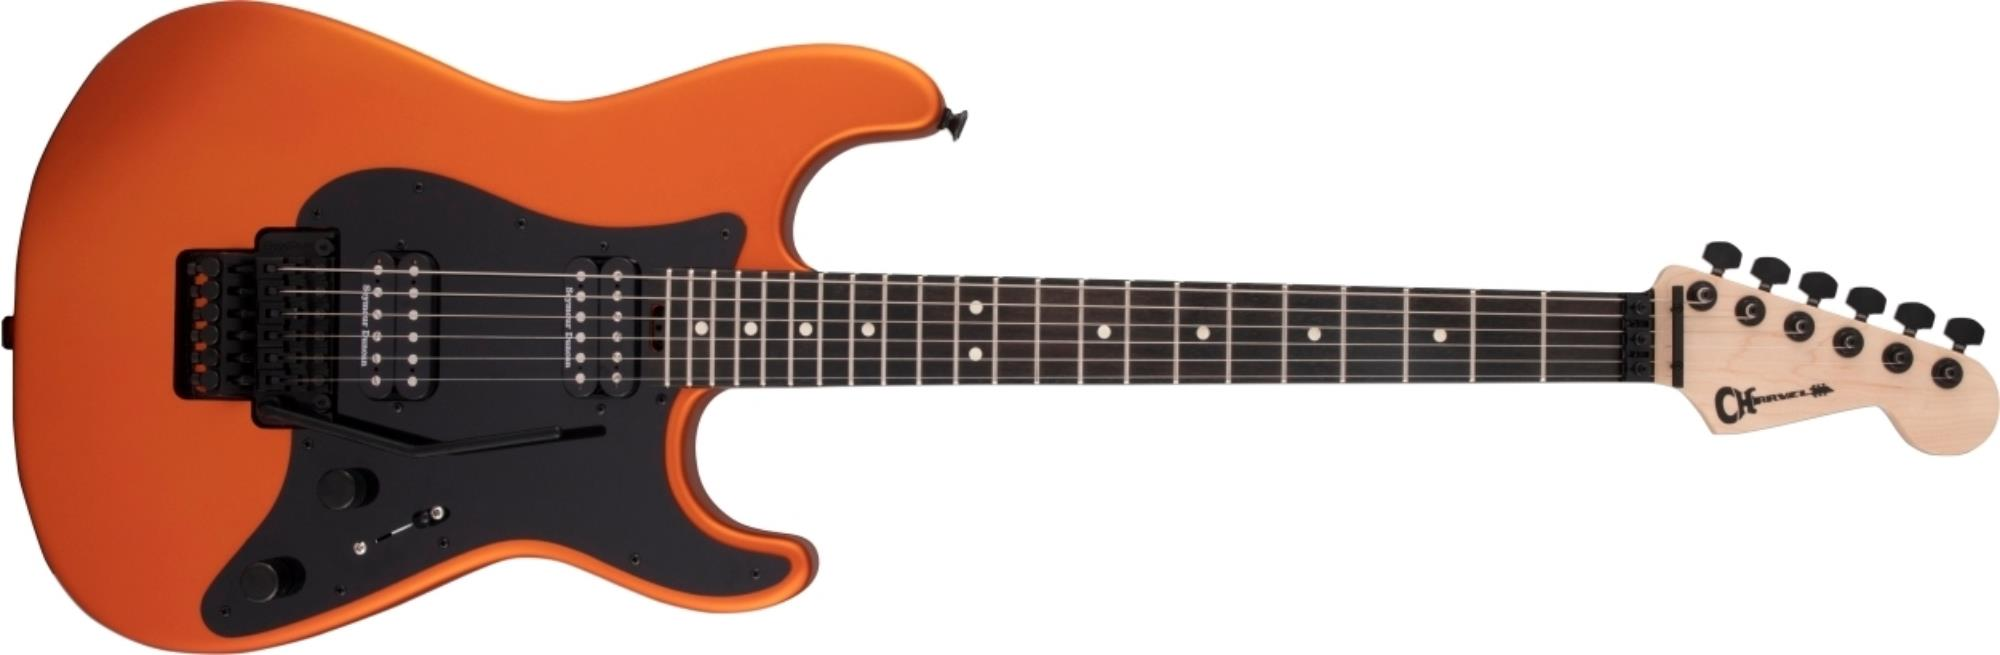 CHARVEL-Pro-Mod-So-Cal-Style-1-HH-FR-EB-Satin-Orange-Blaze-2966801528-sku-24446